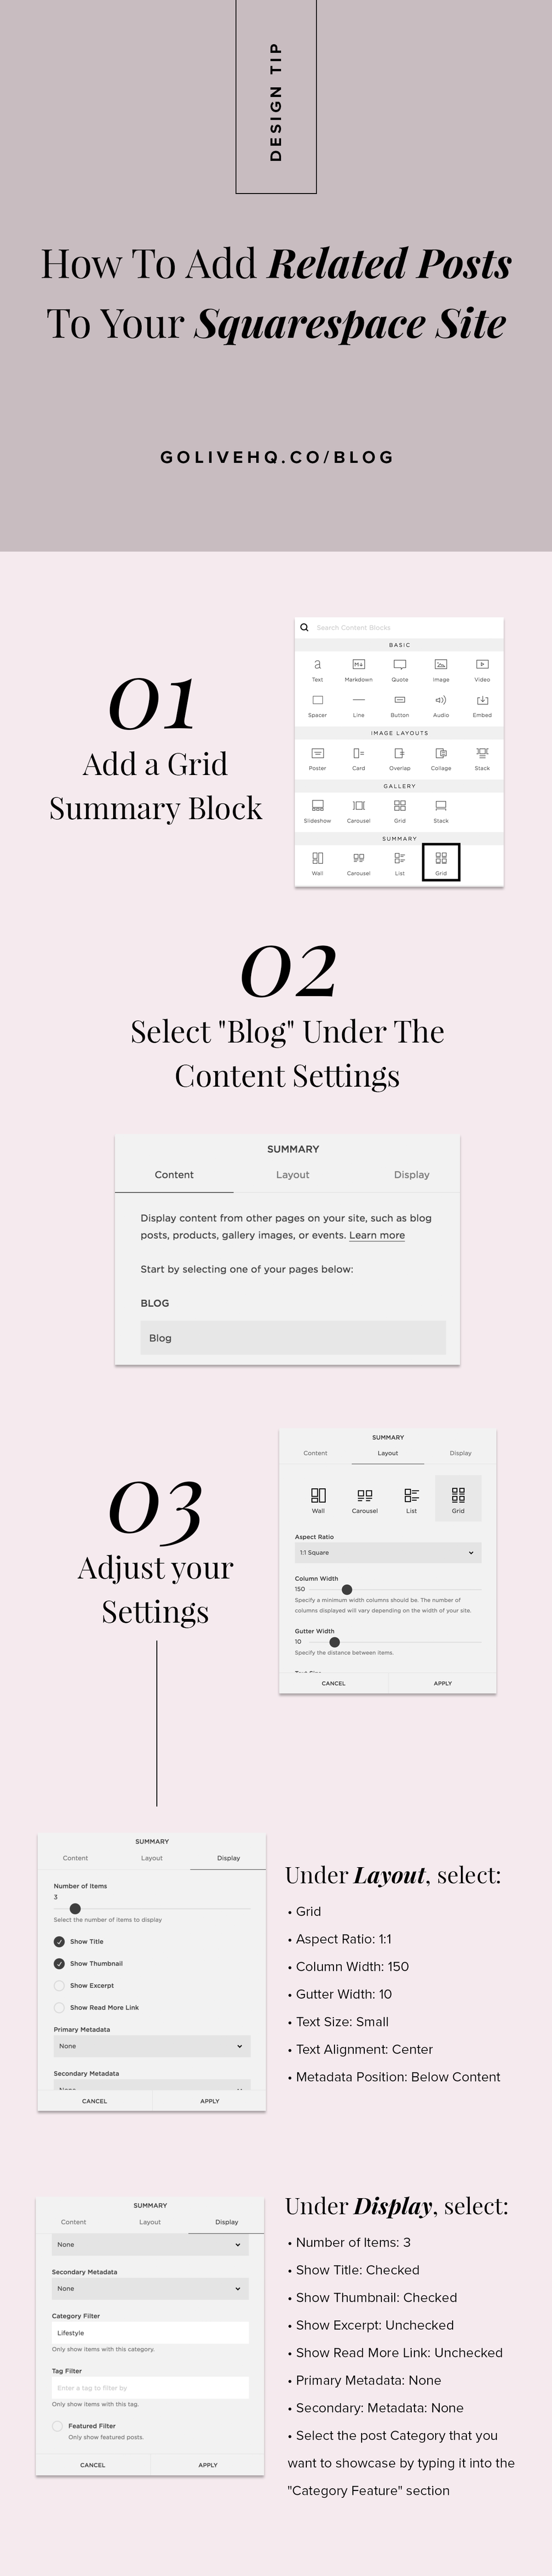 How to add related posts to your squarespace site | By Go Live HQ